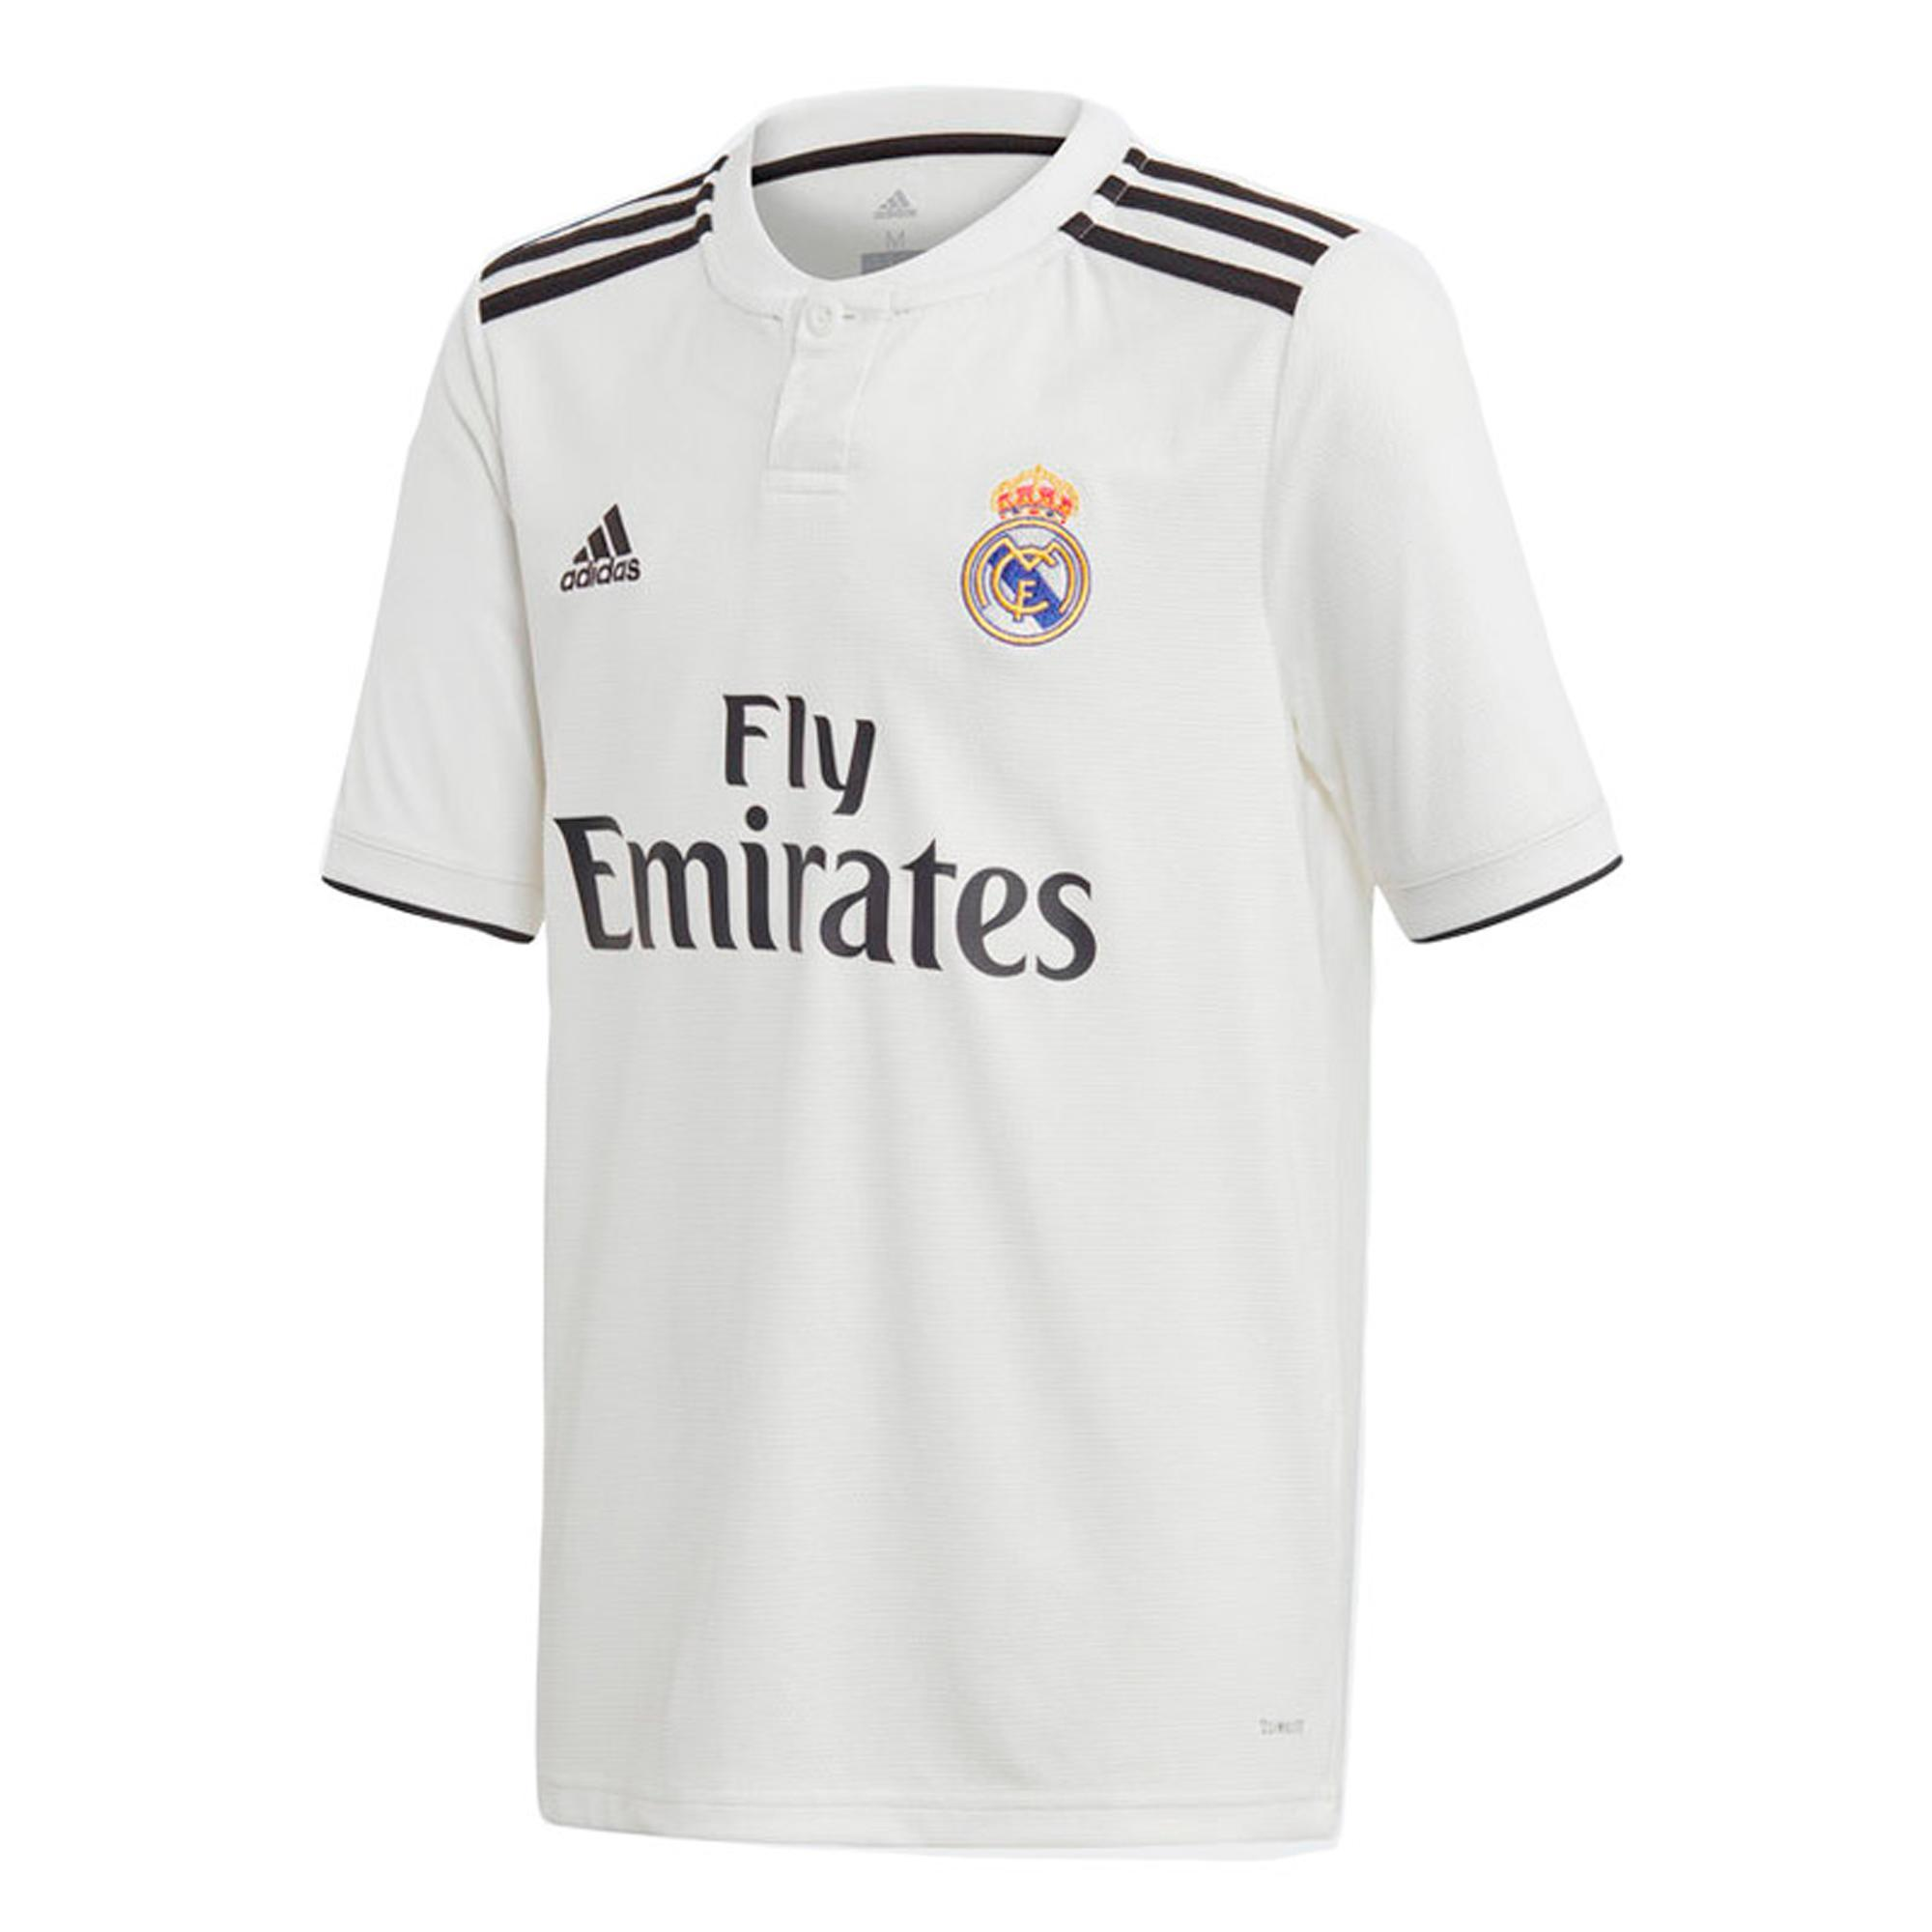 Luminancia Calle principal falta  Camisetas Real Madrid | Decathlon